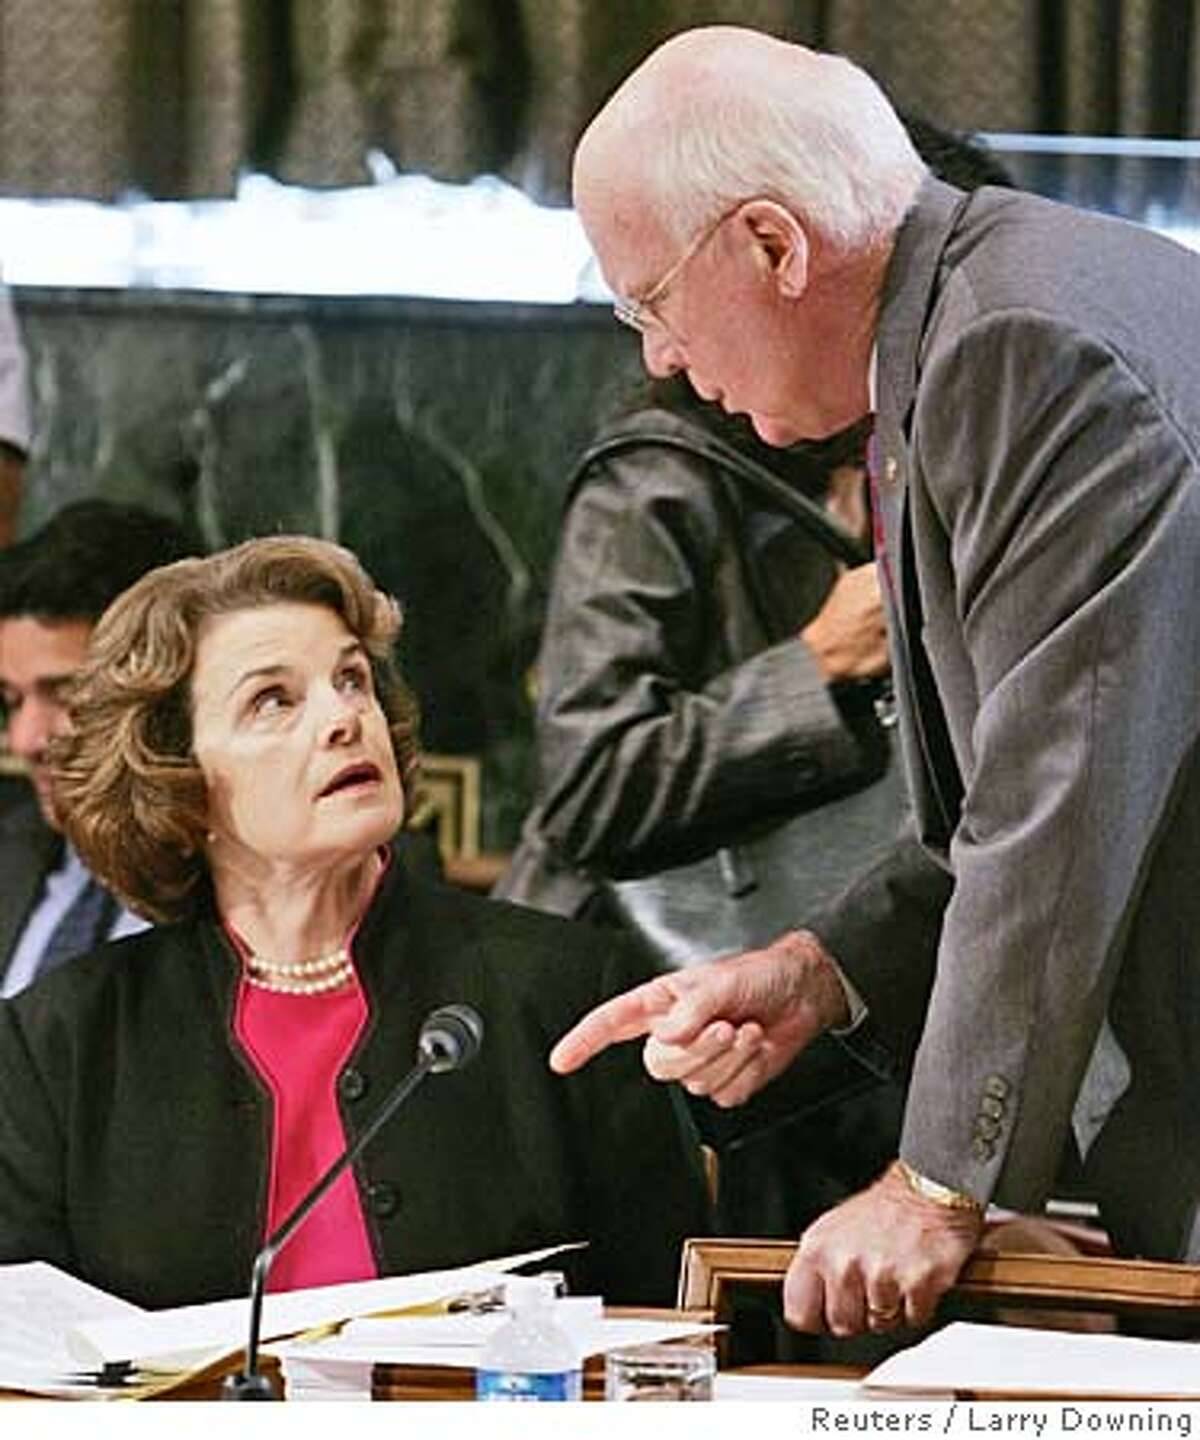 Ranking Senate Judiciary Committee Democratic U.S. Senator Patrick Leahy (D-VT) (R), confers with U.S. Senator Dianne Feinstein (D-CA) before he speaks in favor of the nomination of John Roberts to be Chief Justice of the Supreme Court during the Senate Judiciary Committee mark-up hearings on Capitol Hill in Washington September 22, 2005. U.S. Senate leaders warned President George W. Bush on Wednesday his next Supreme Court nominee will likely face a far more contentious confirmation battle than conservative John Roberts, who is poised to become U.S. chief justice. Feinstein announced she would not support Roberts for the position. REUTERS/Larry Downing 0